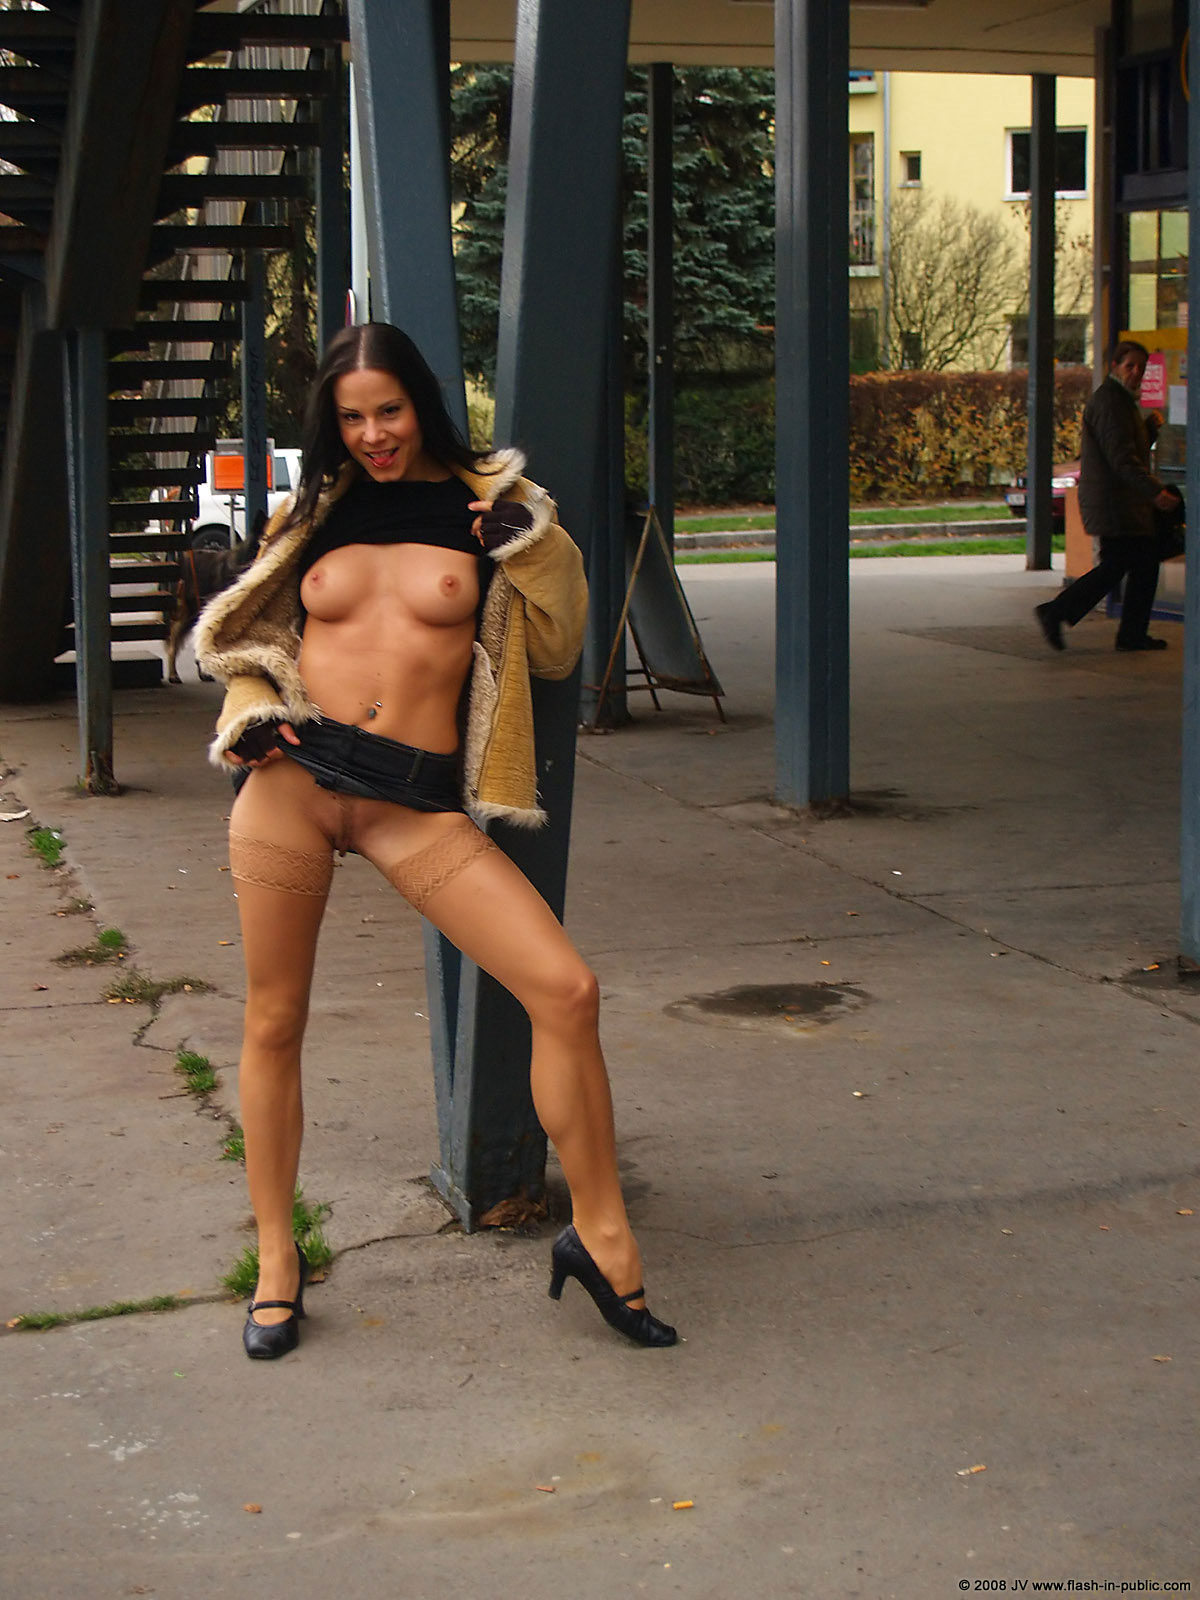 alexandra-g-bottomless-stockings-flash-in-public-20